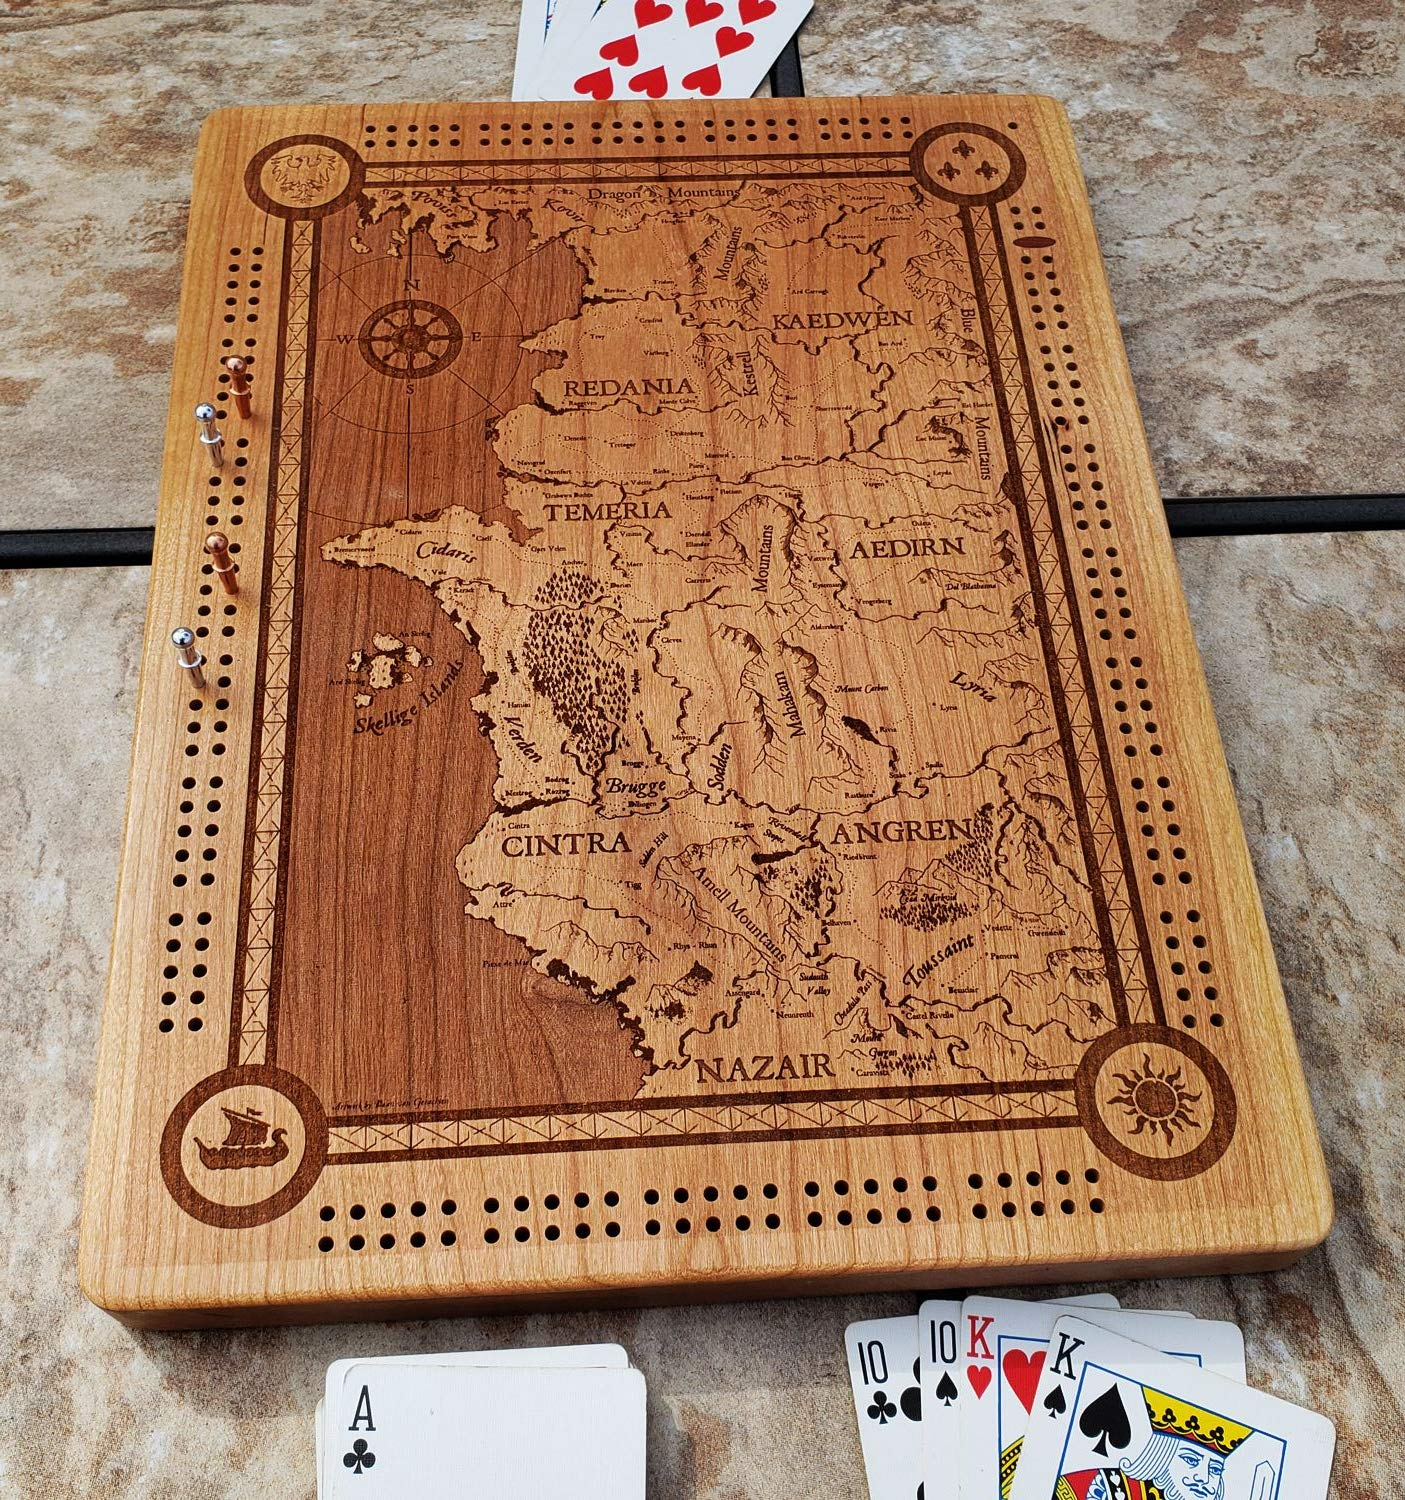 Amazon.com: The Witcher World Map Cribbage Board: Handmade